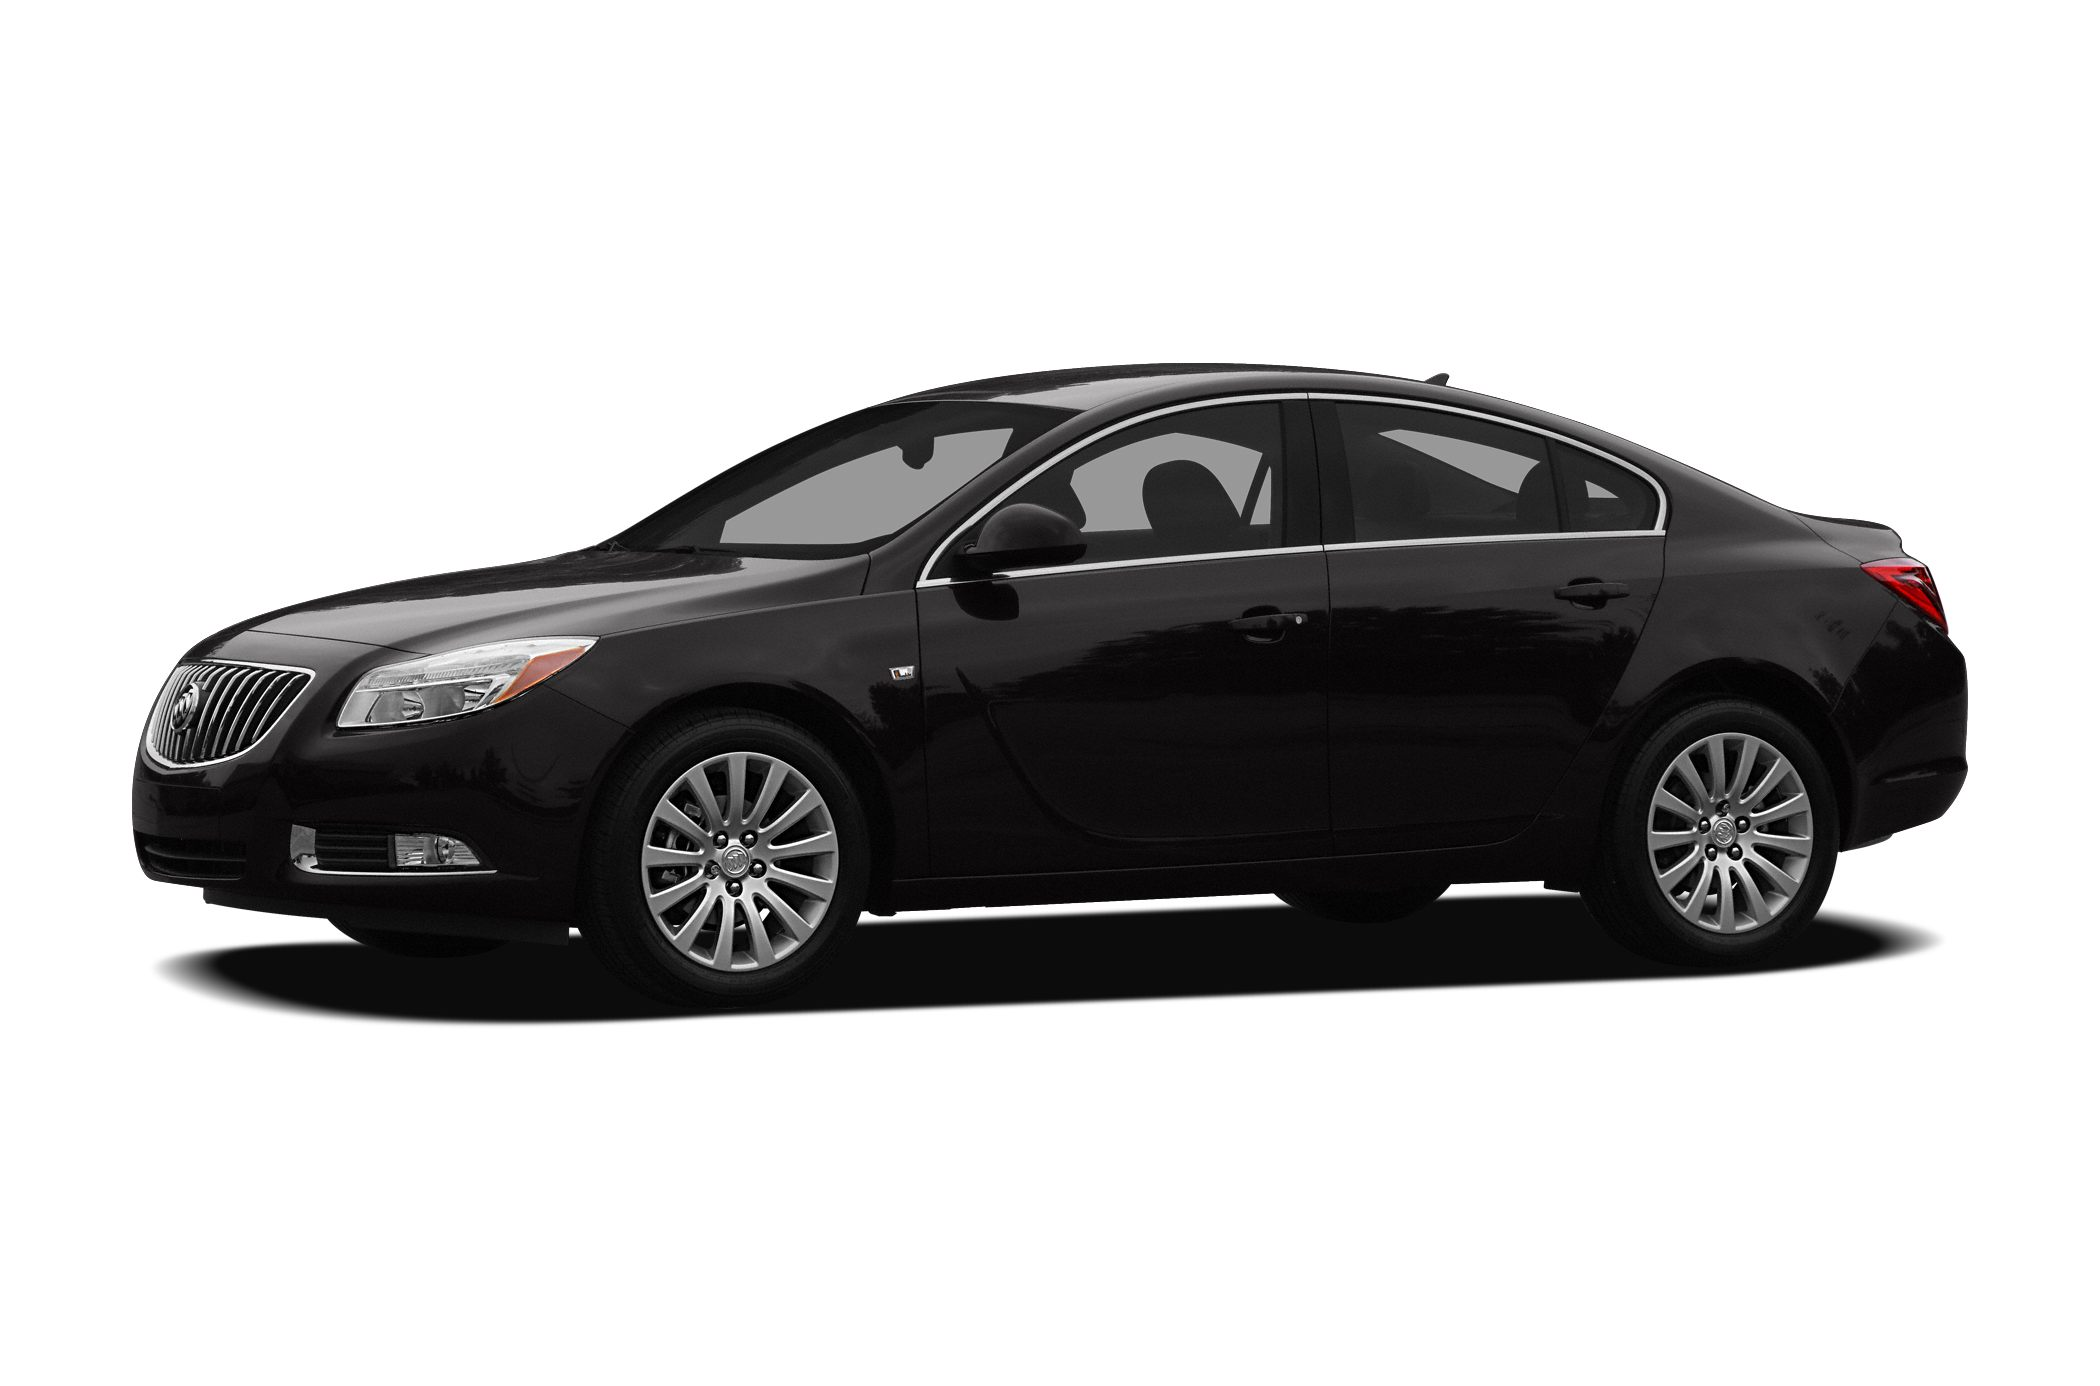 2011 Buick Regal CXL Sedan for sale in Smyrna for $16,900 with 35,463 miles.